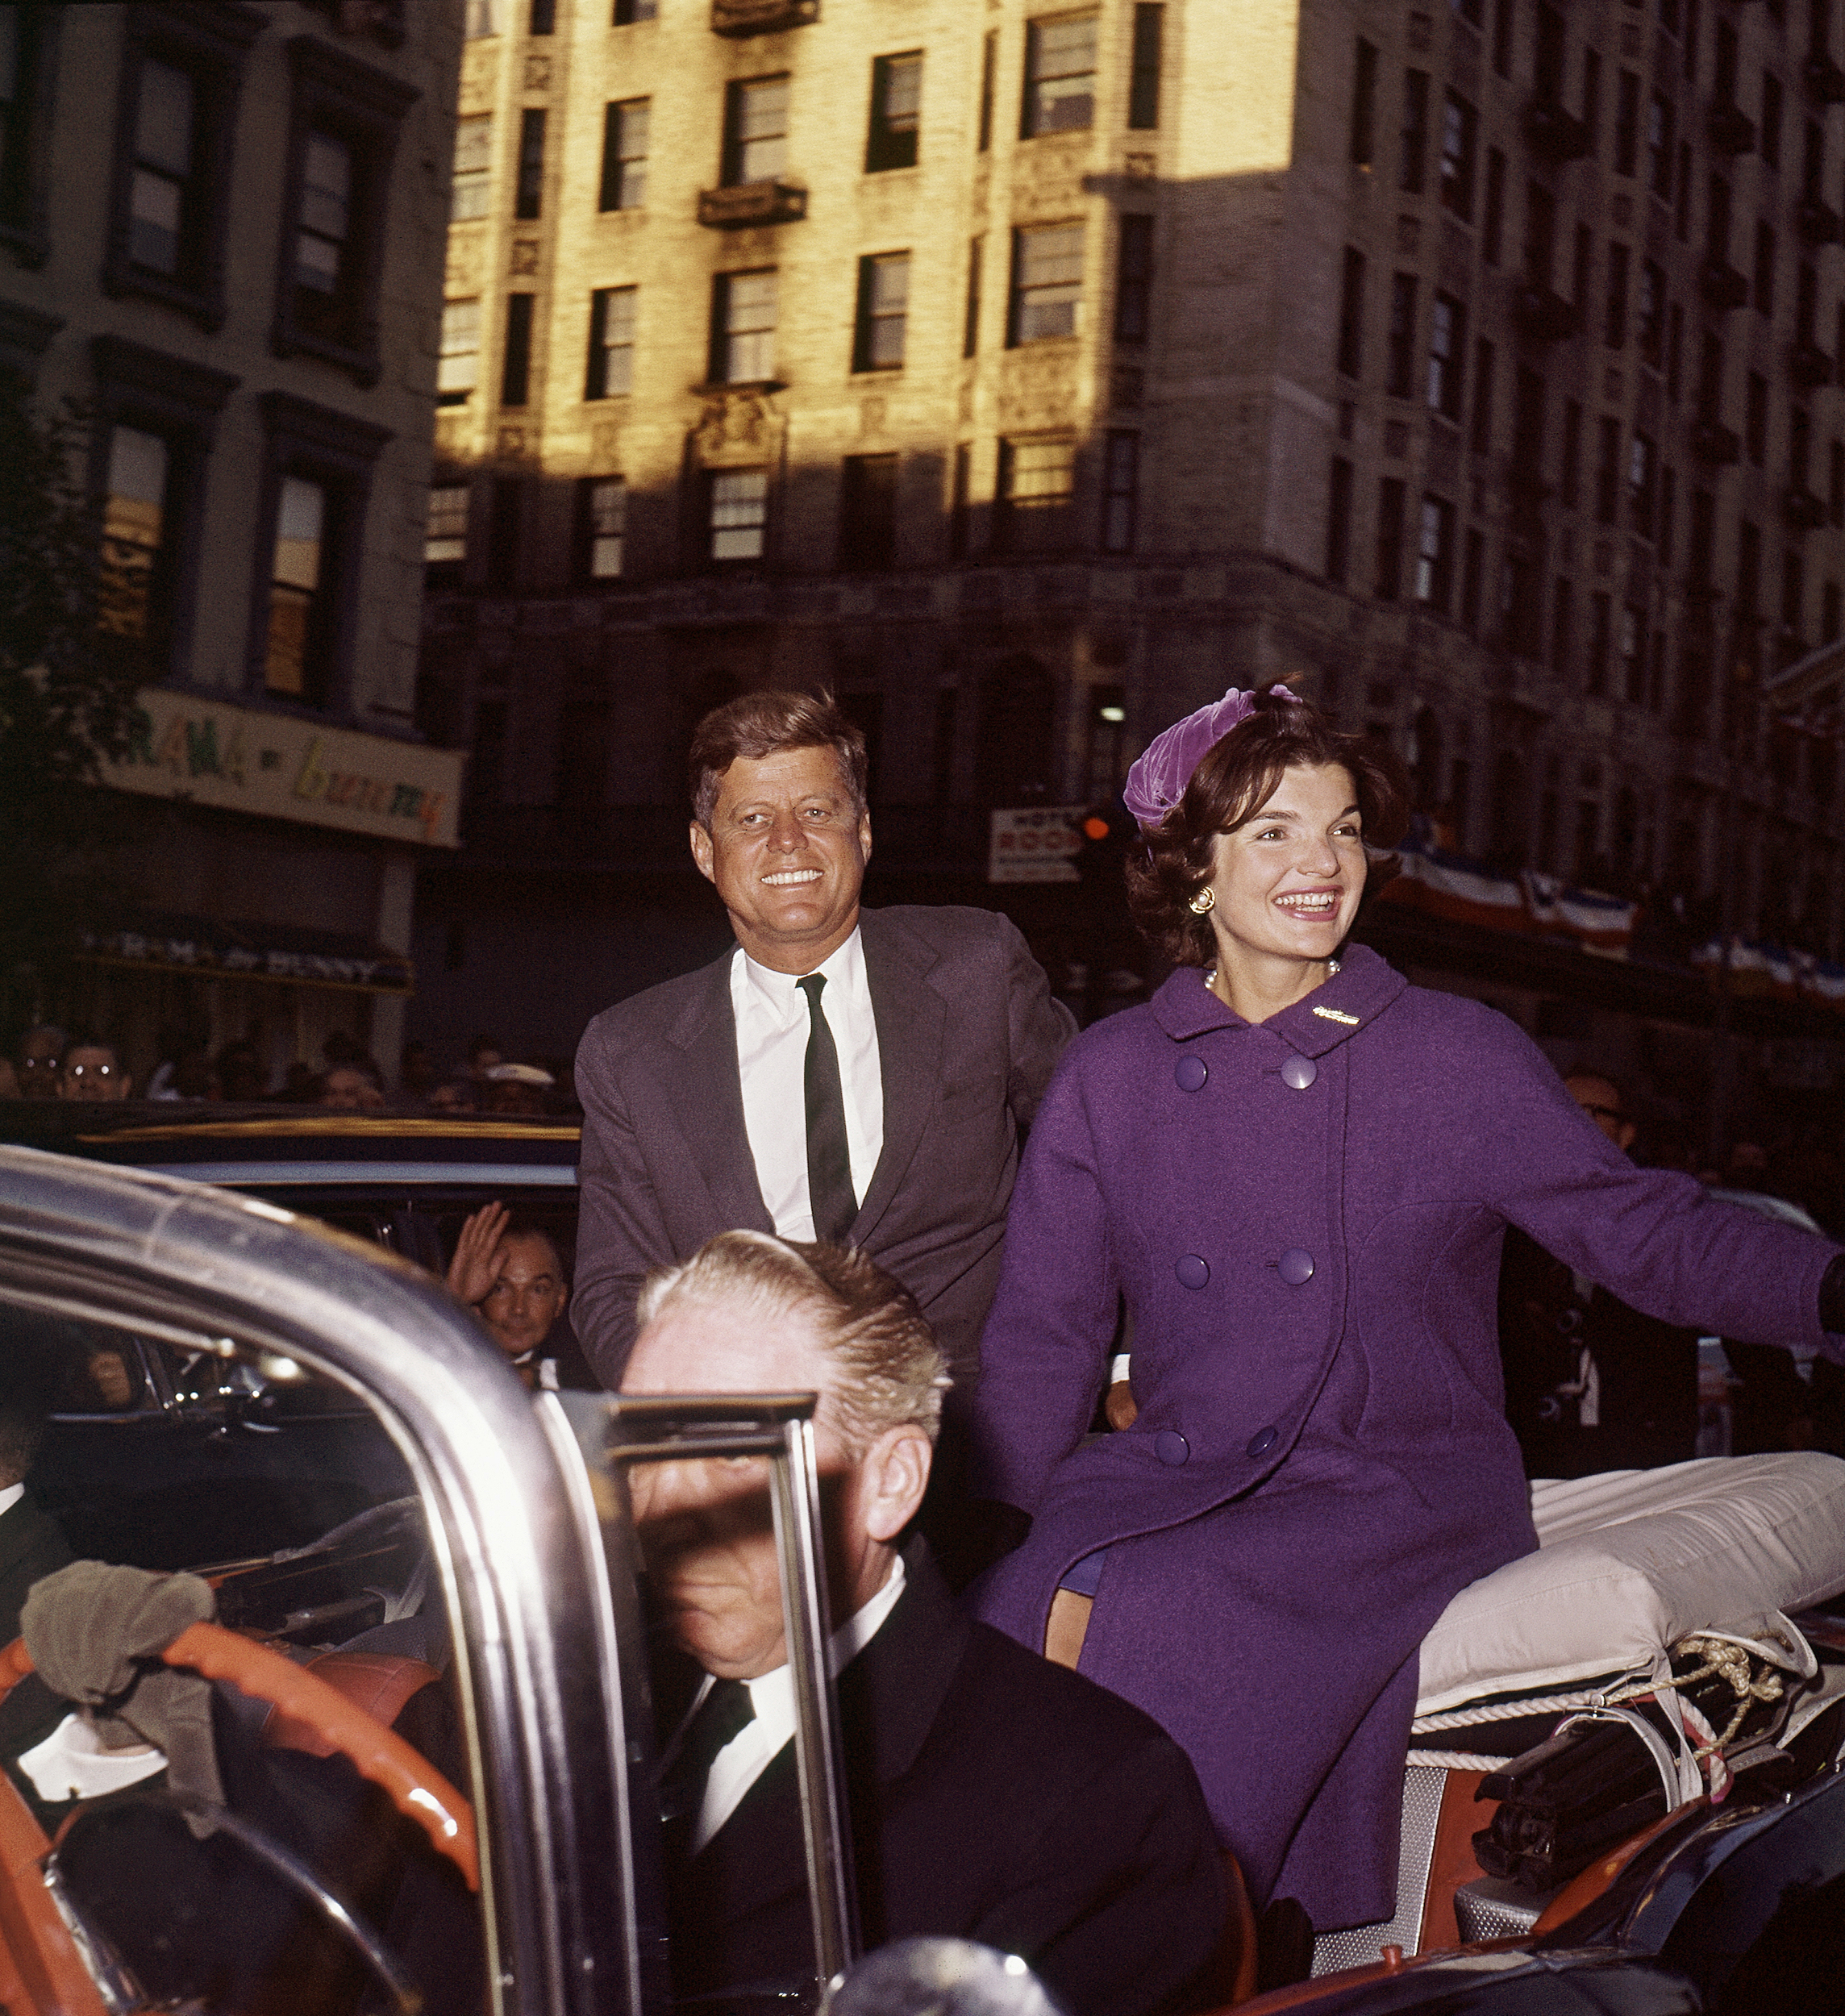 Image: U.S. Senator John F. Kennedy, with wife Jacqueline, campaign in New York City